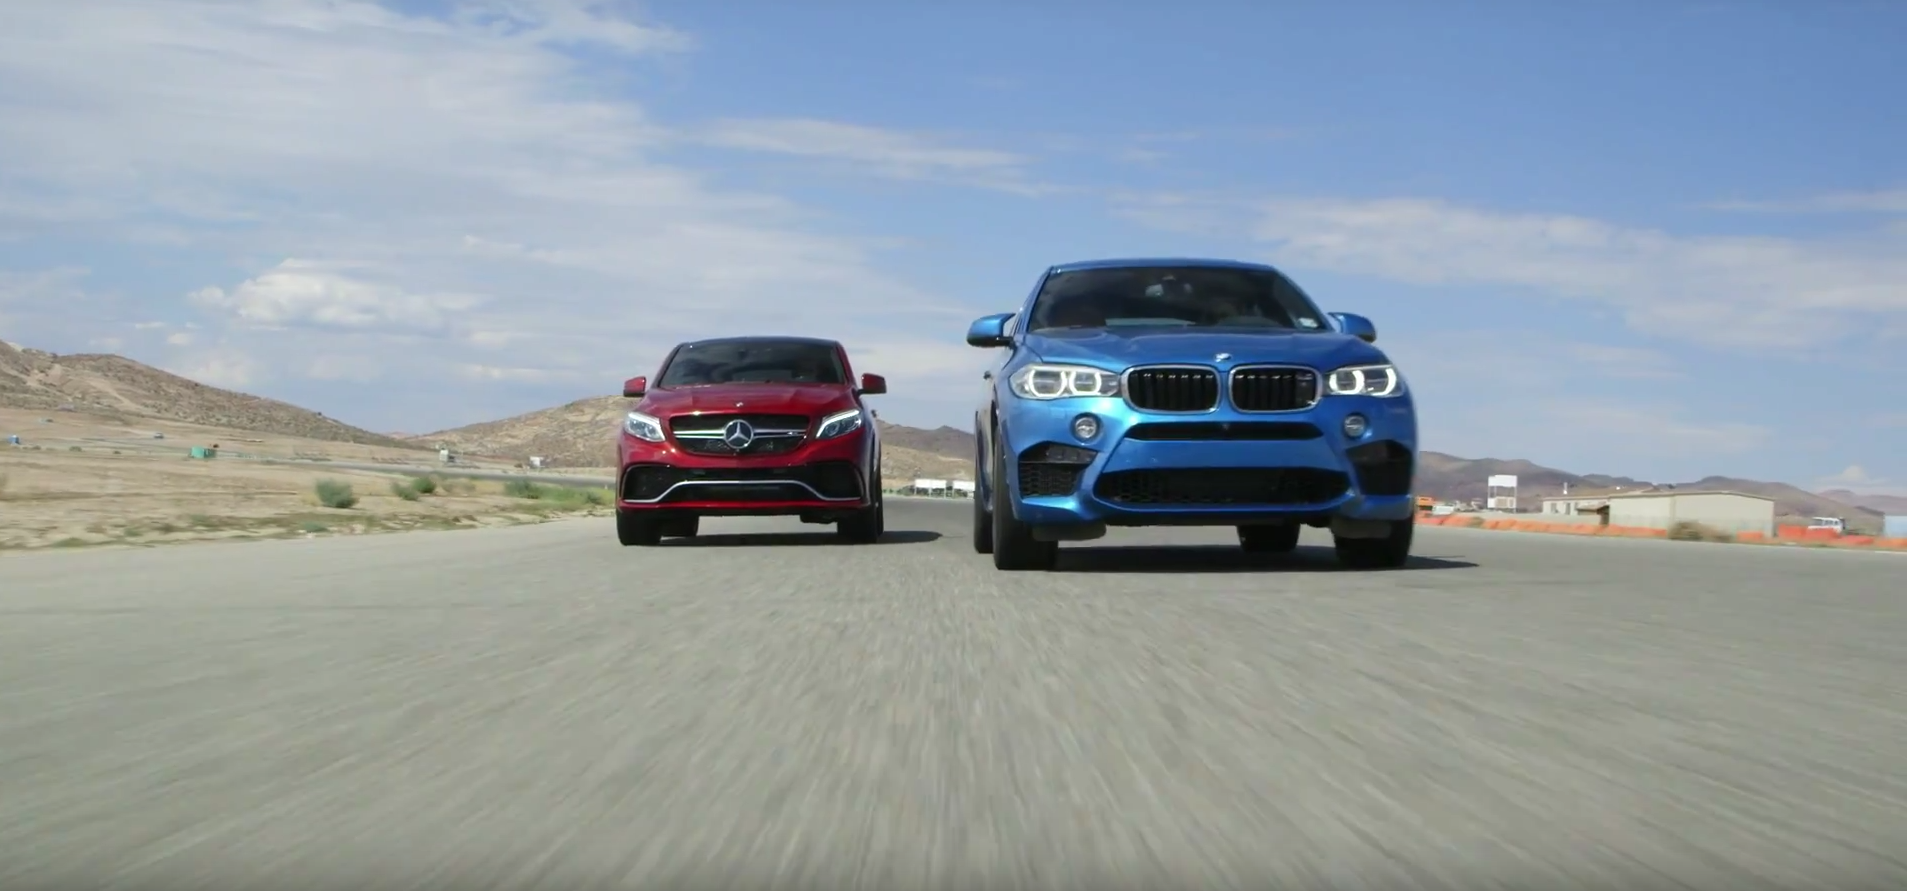 This Bmw X6 M Versus Mercedes Amg Gle63 S Coupe Comparison Is Just